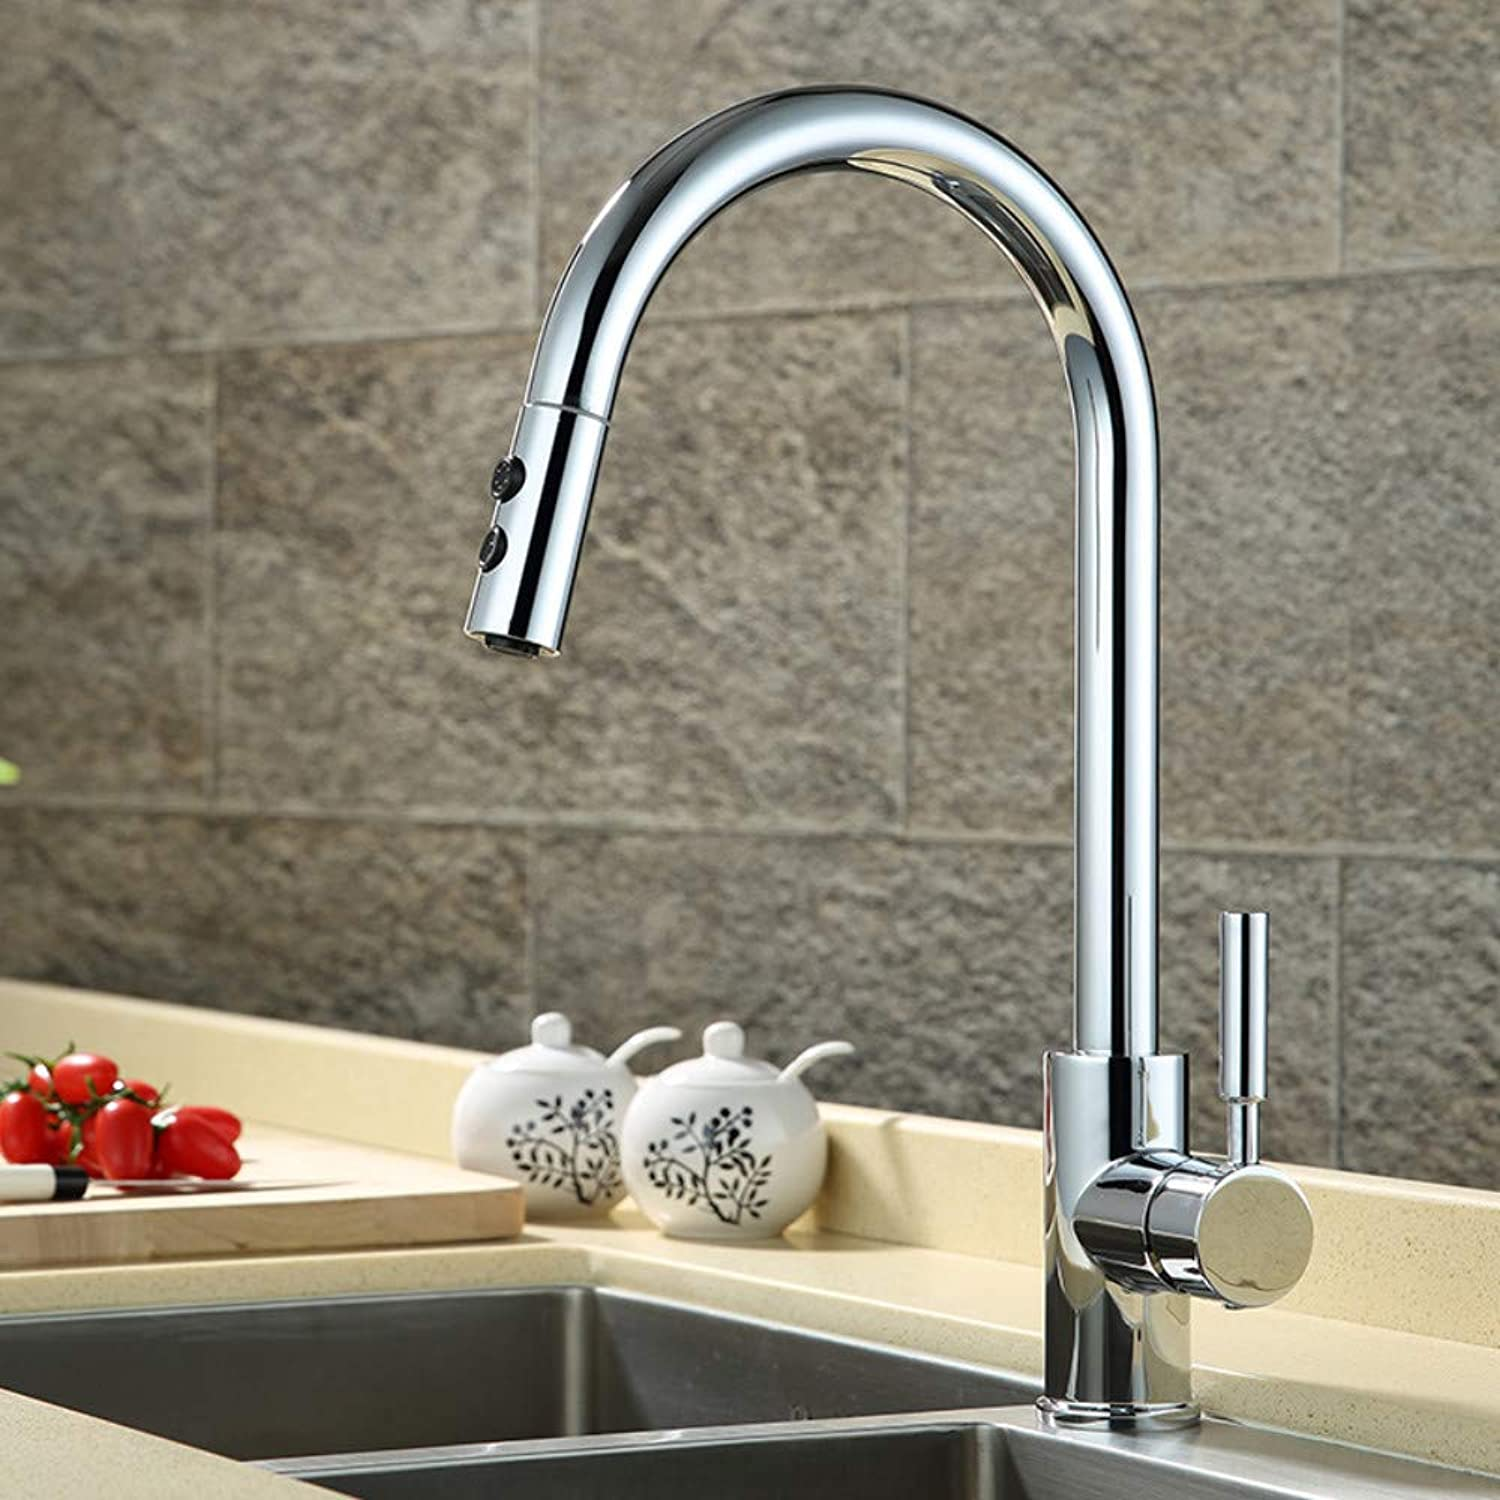 Kitchen Sink Sink Sink Sink Copper Pull redary Hot and Cold Faucet Chrome